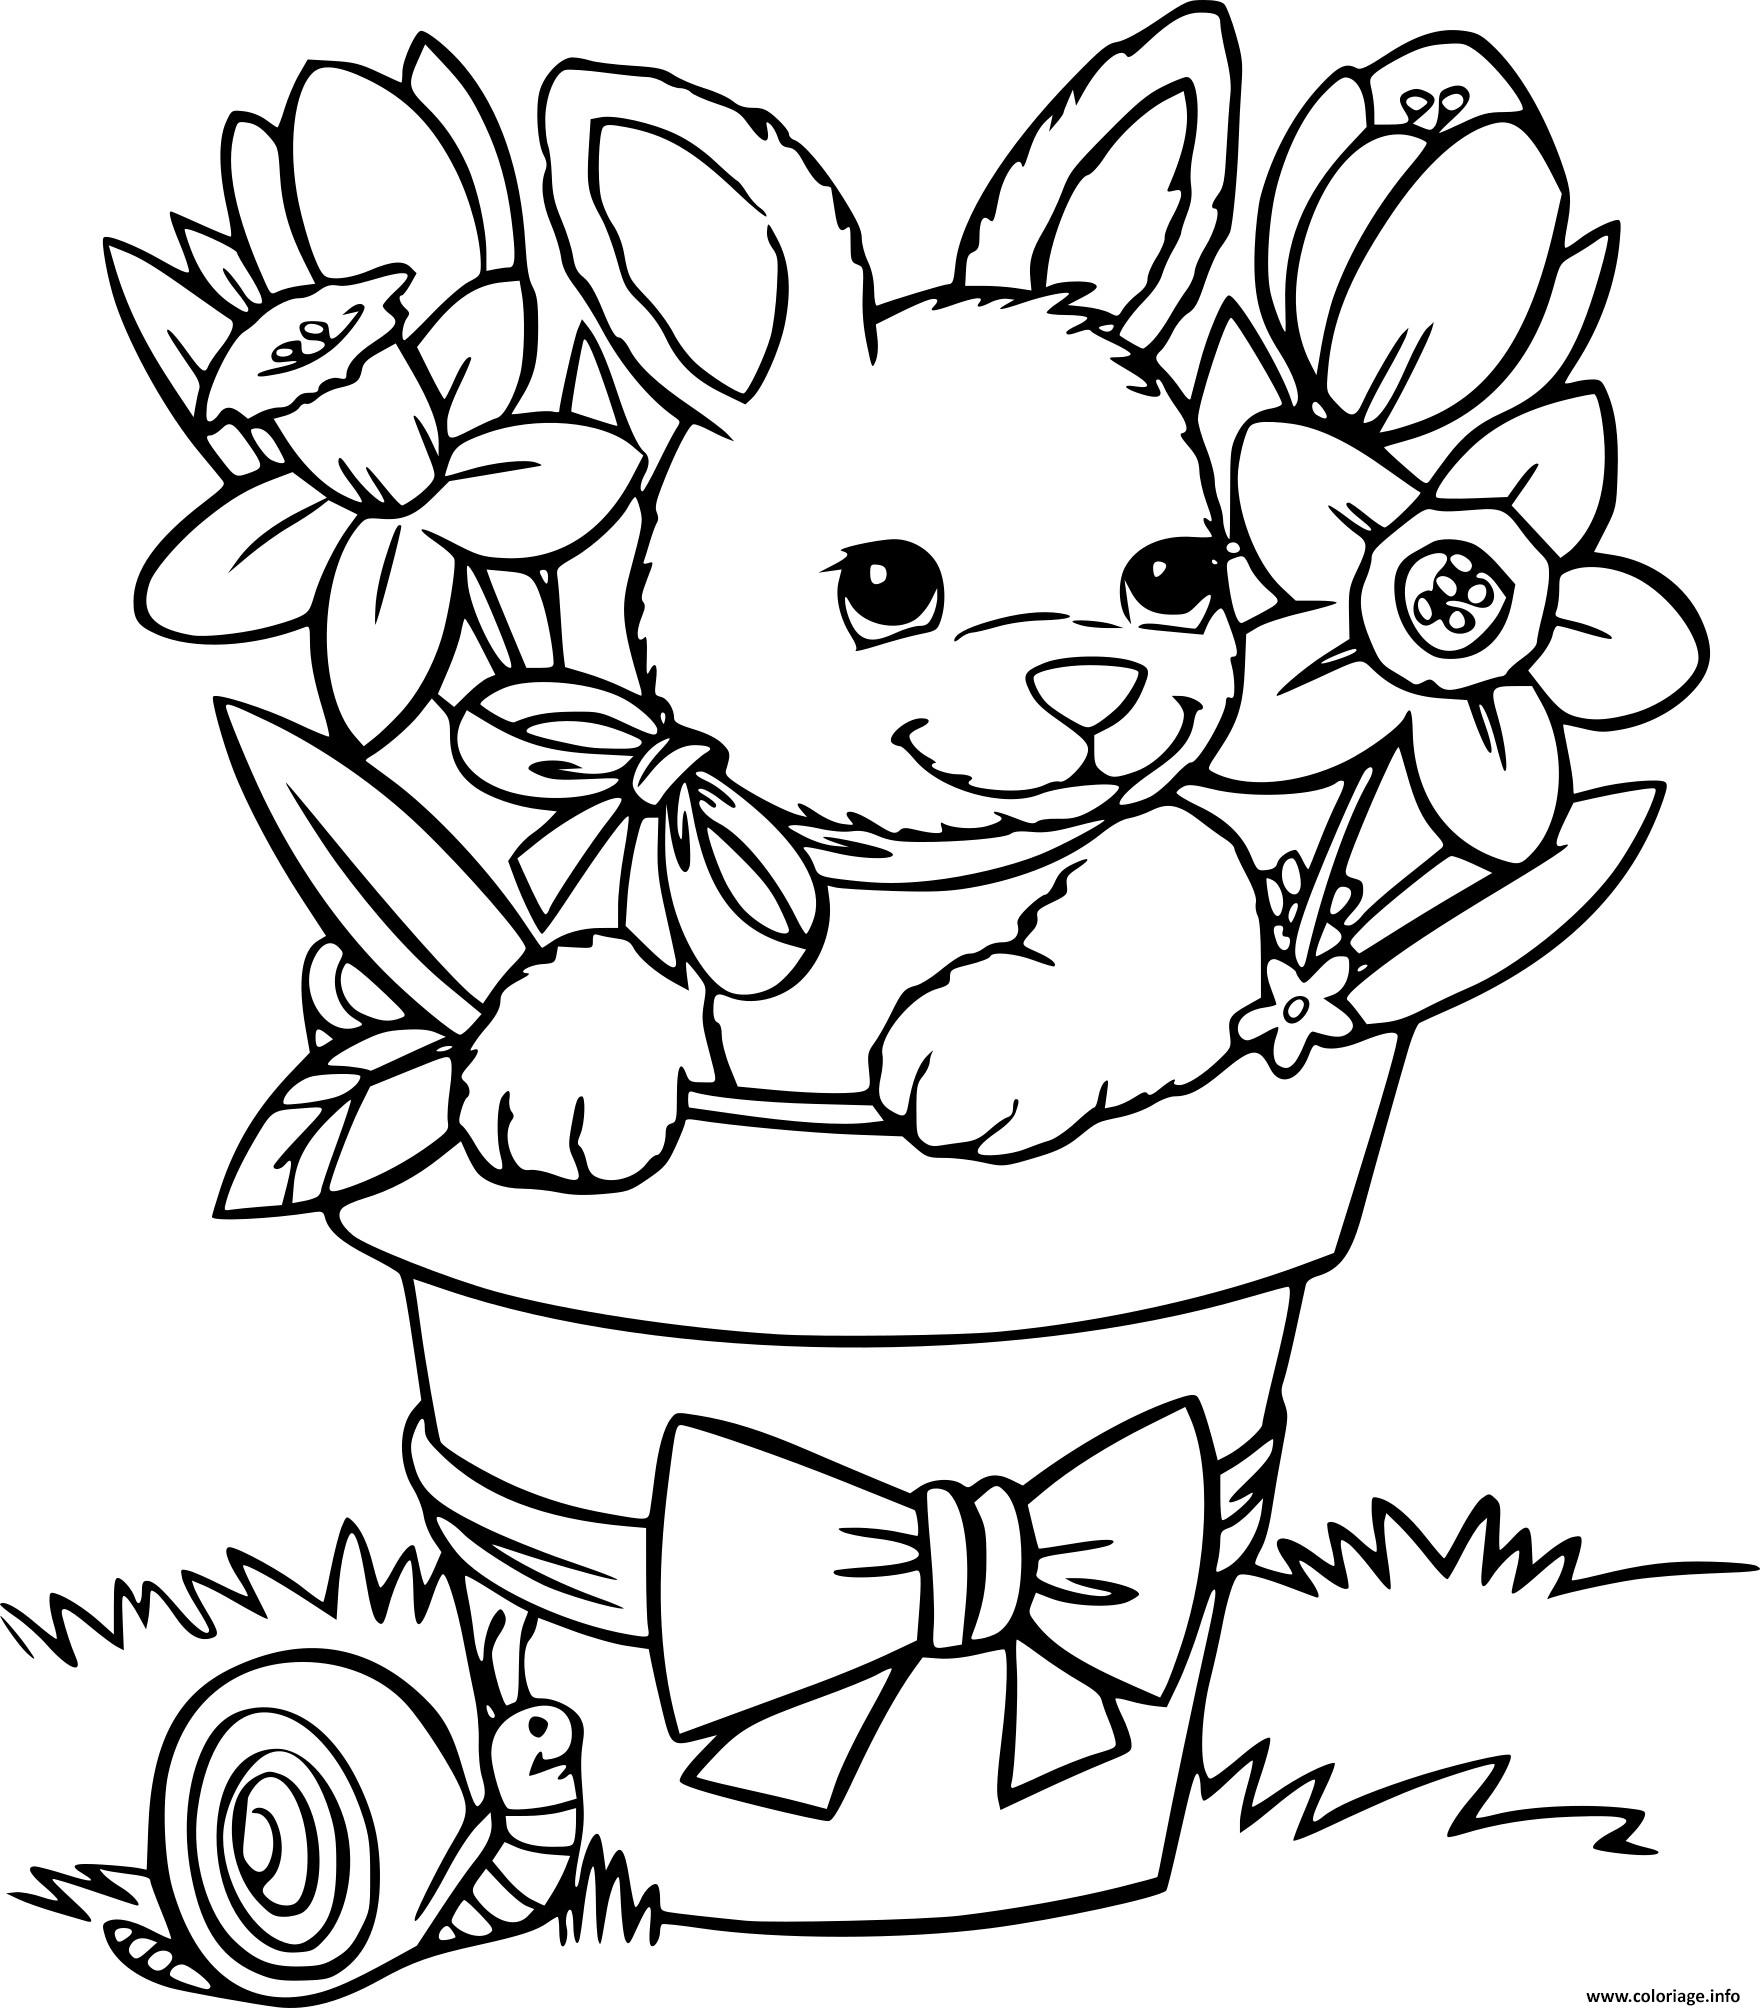 Coloriage lapin avec un escargot - Coloriages lapin ...